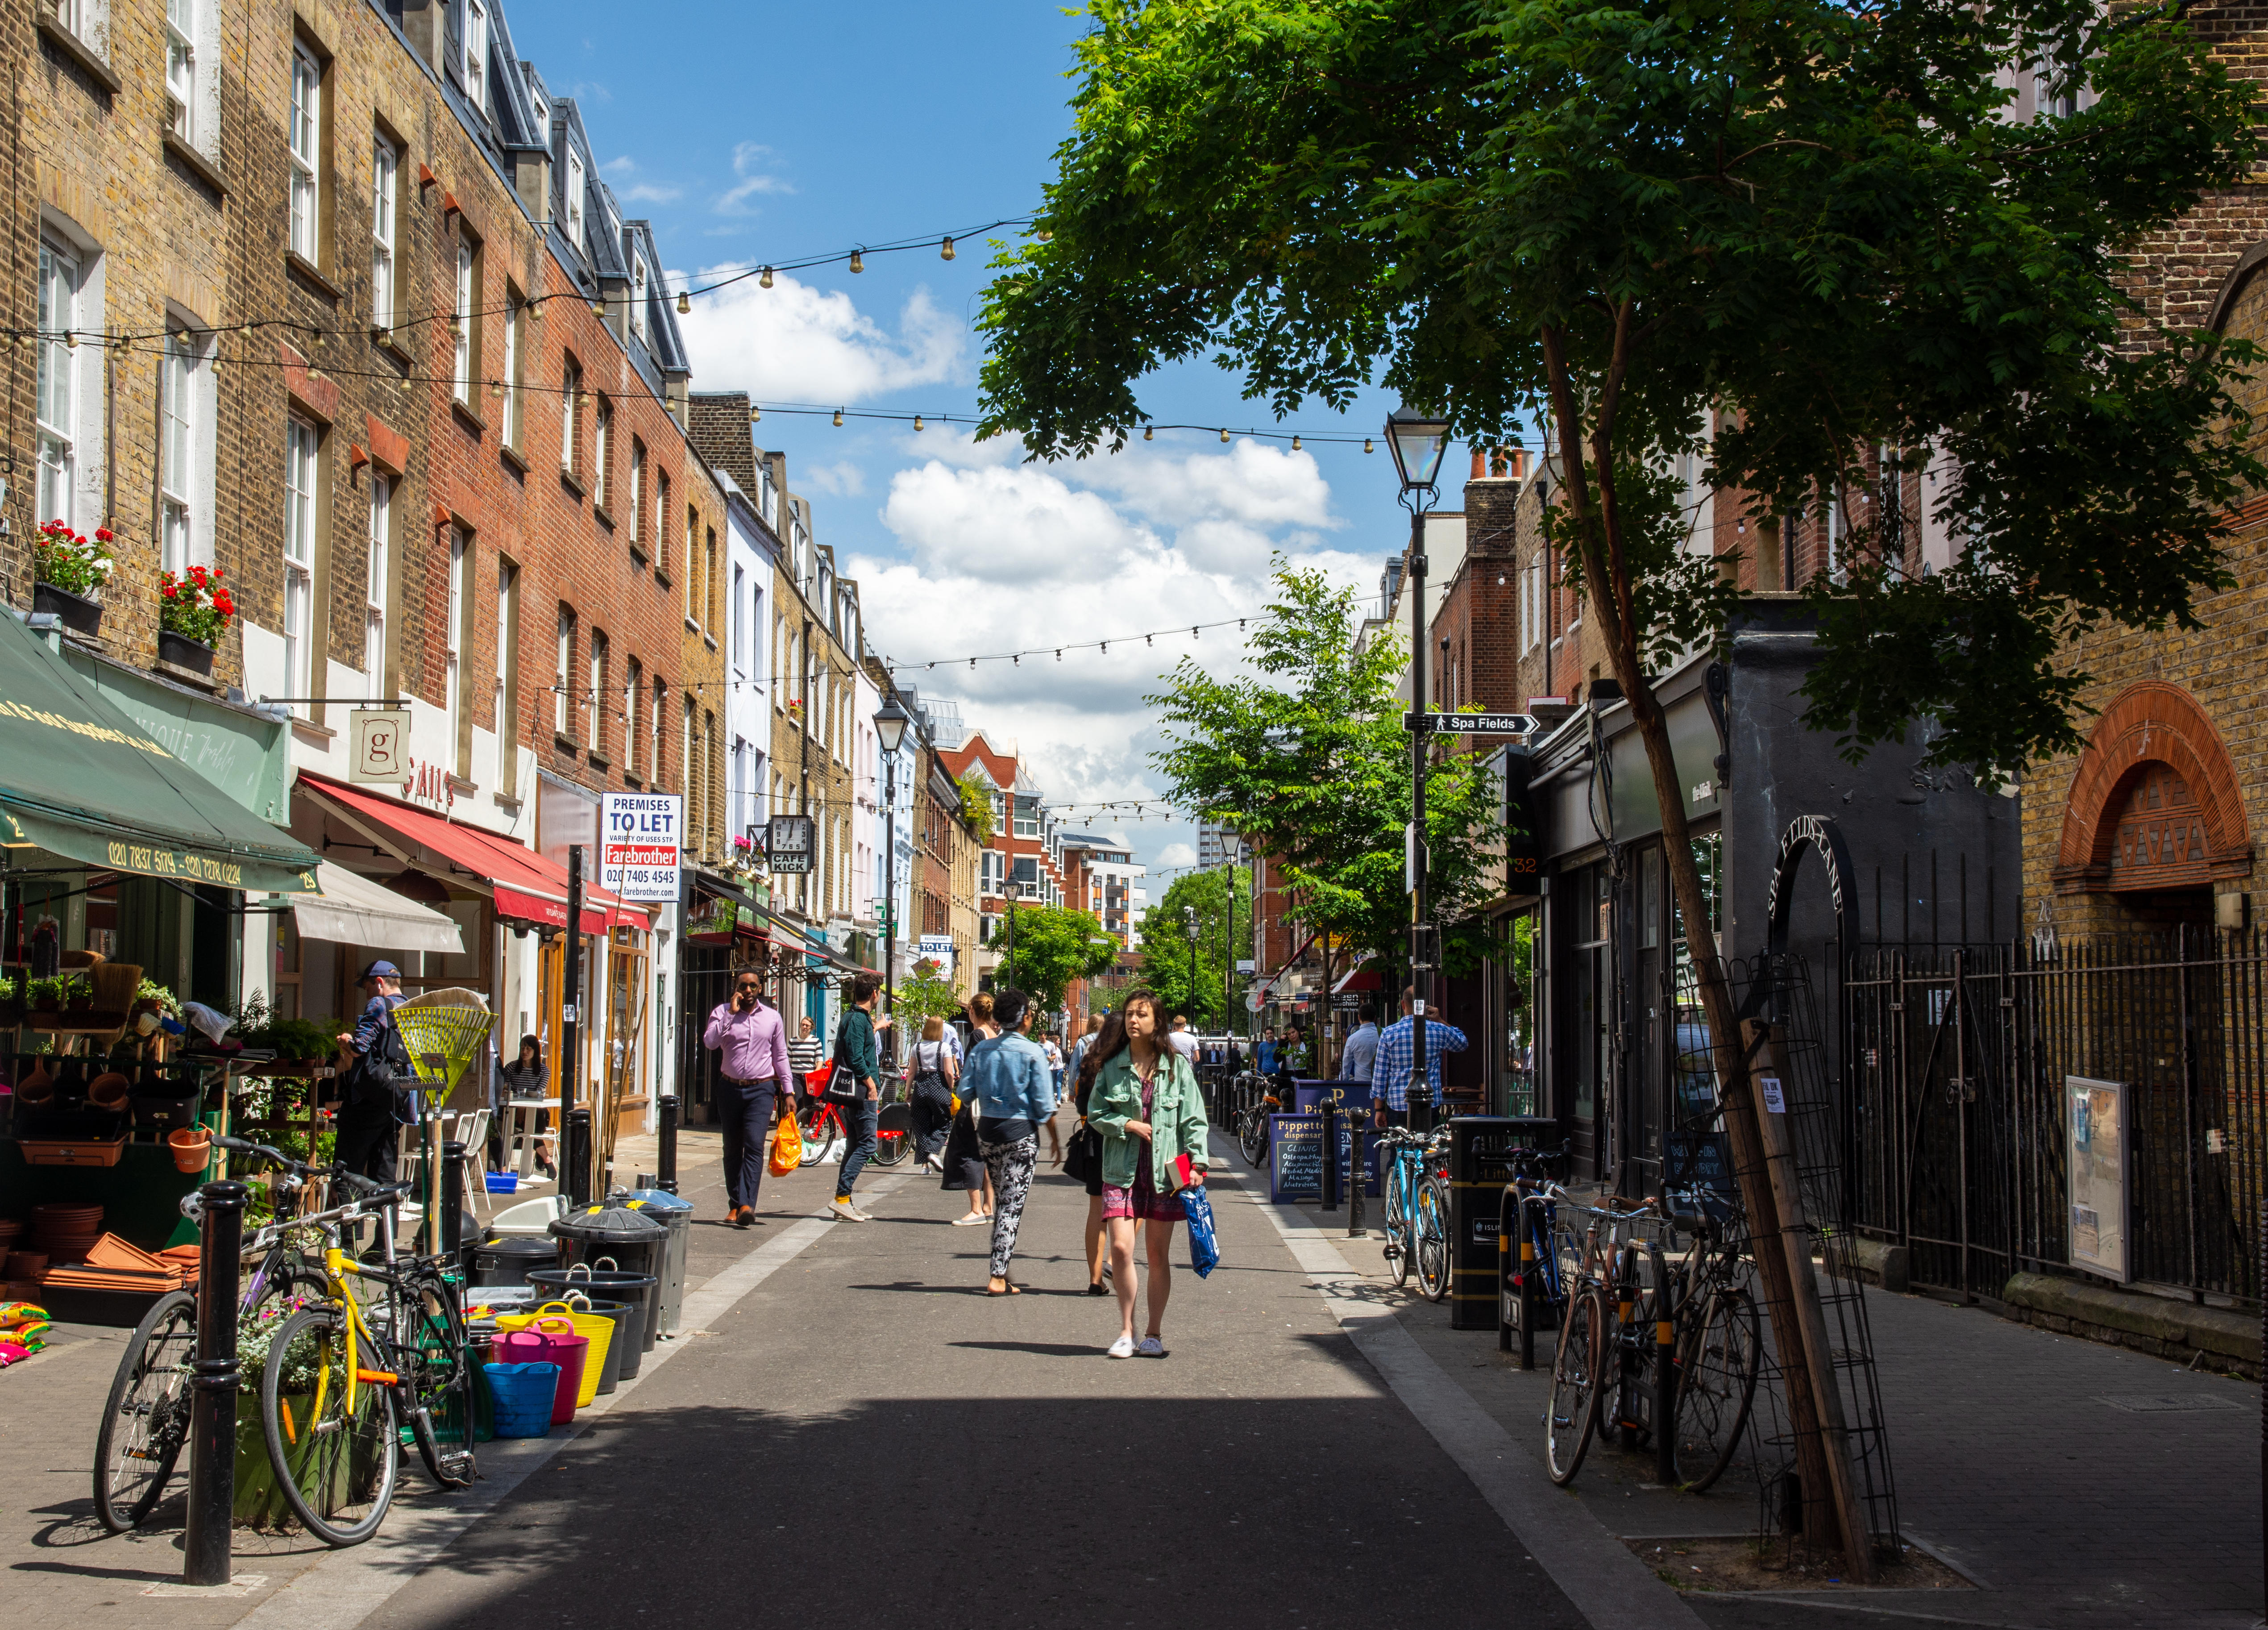 How Clerkenwell turned from monastic outpost into a hotbed of revolutionaries only to become one of London's most sought-after villages - Country Life